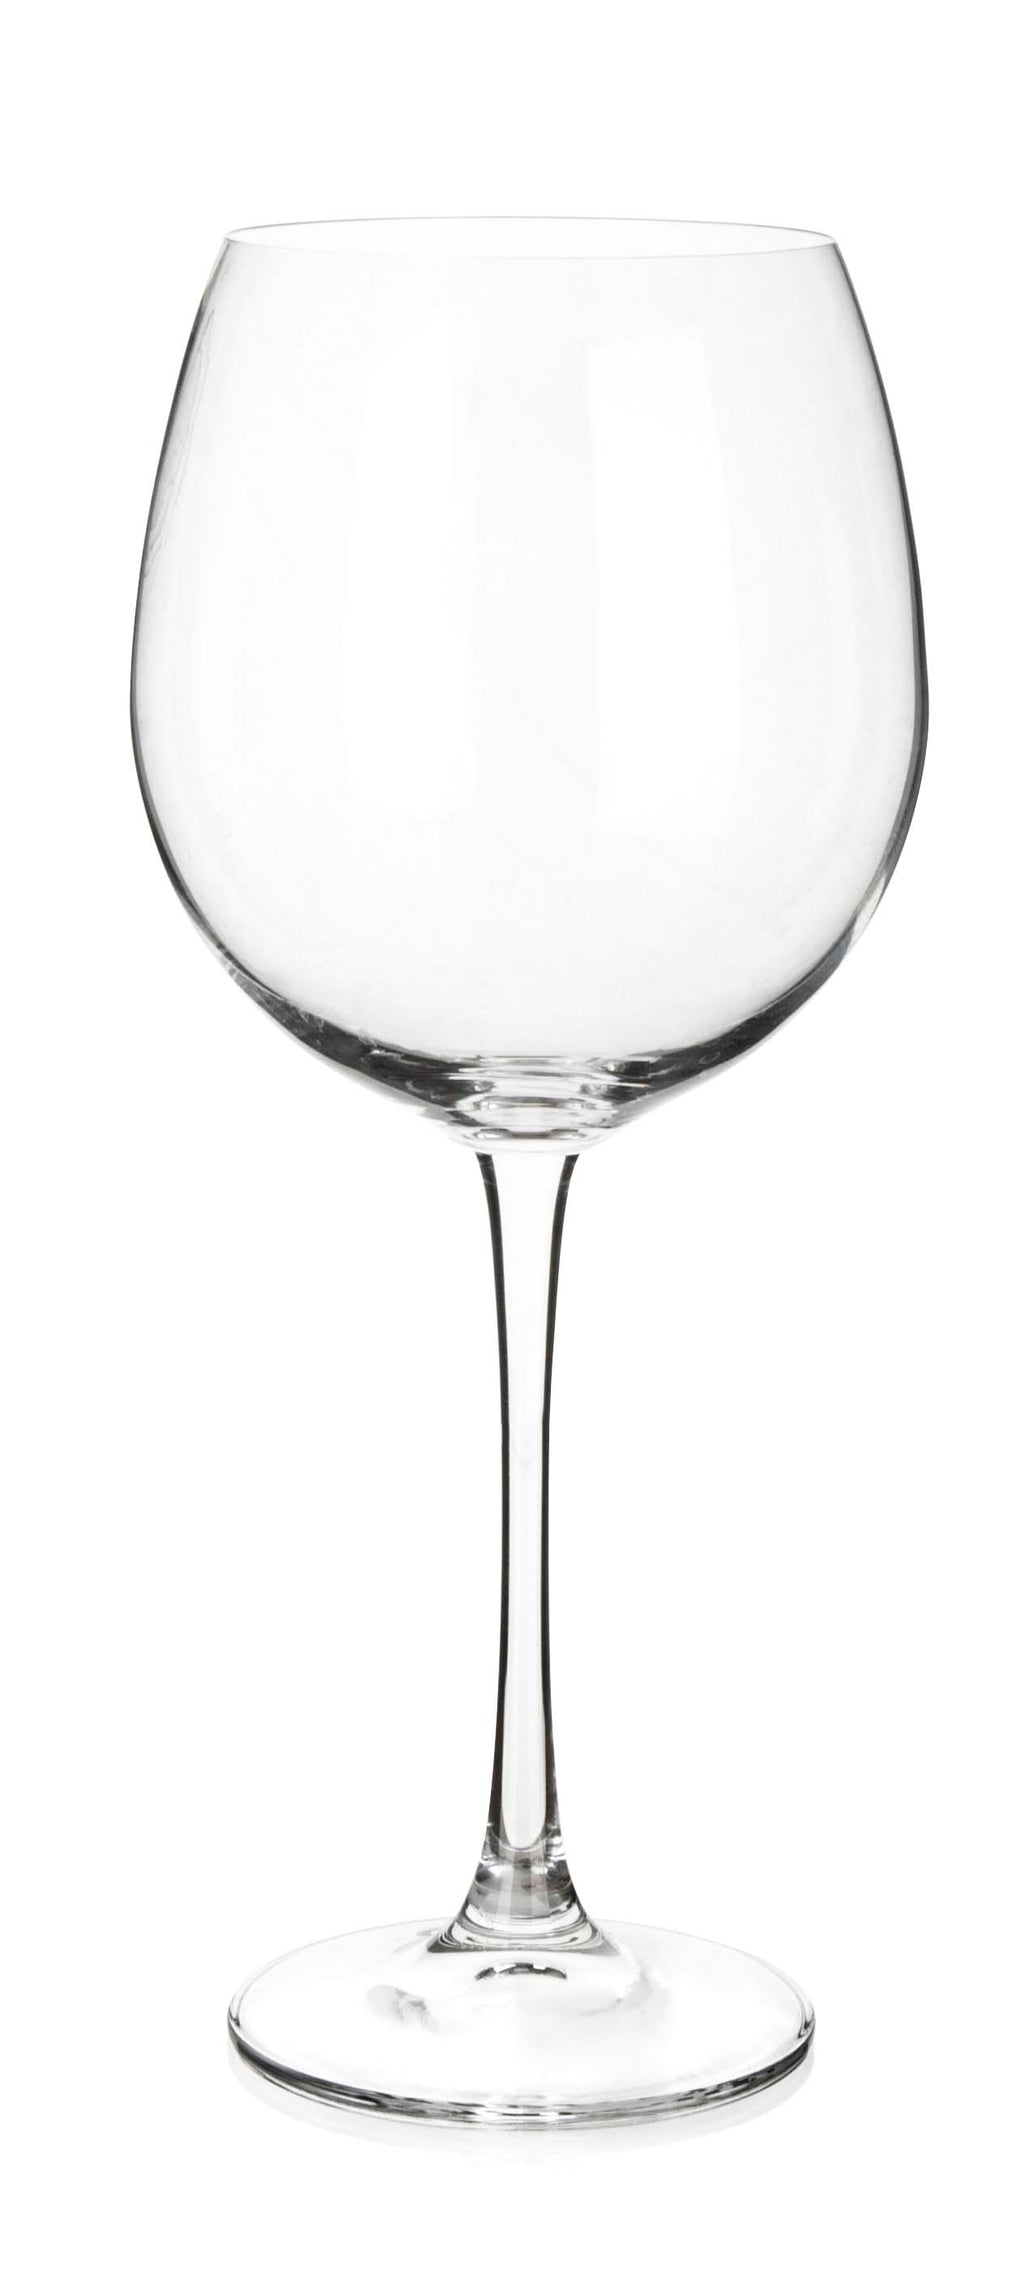 Maison Forine - Veronica Burgundy,Wine Glass,Maison Forine Crystal By Bohemia